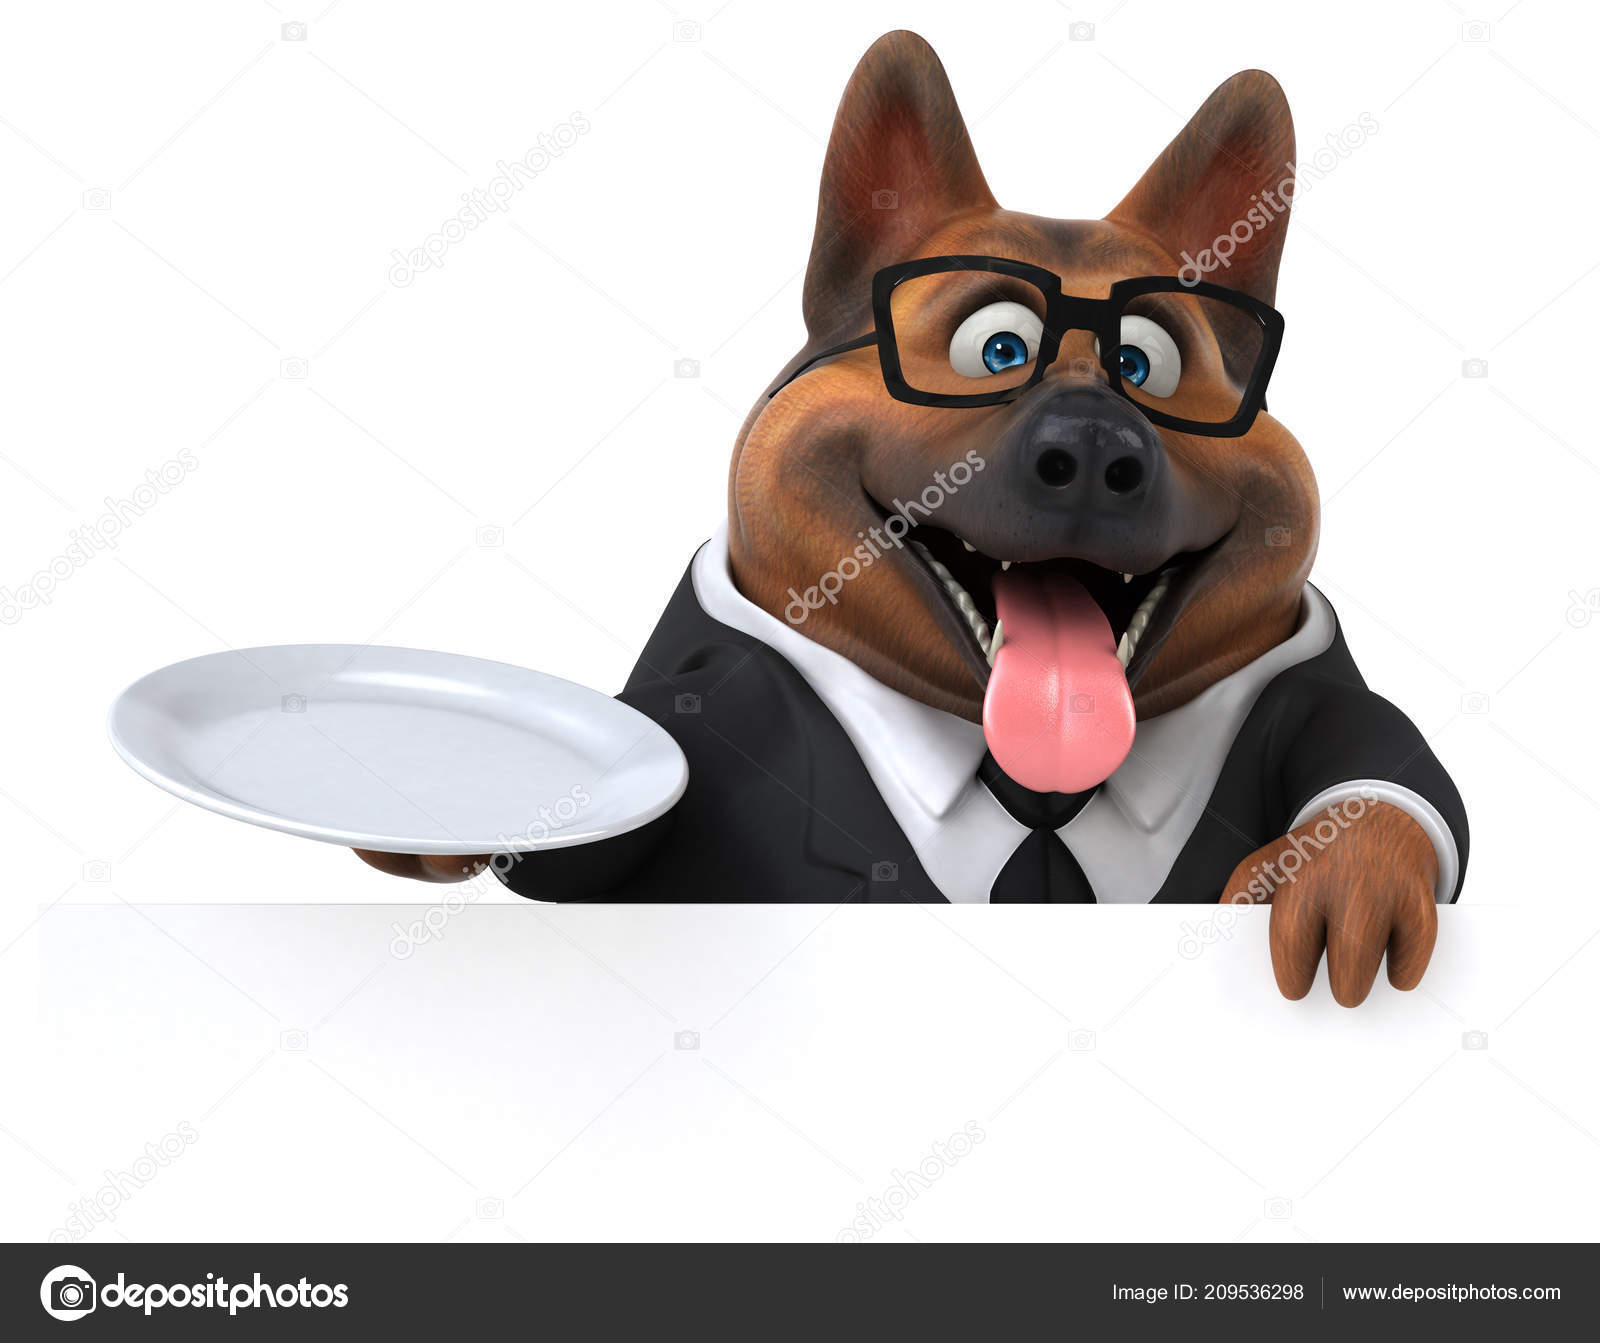 Fun Cartoon Character Plate Illustration Stock Photo C Julos